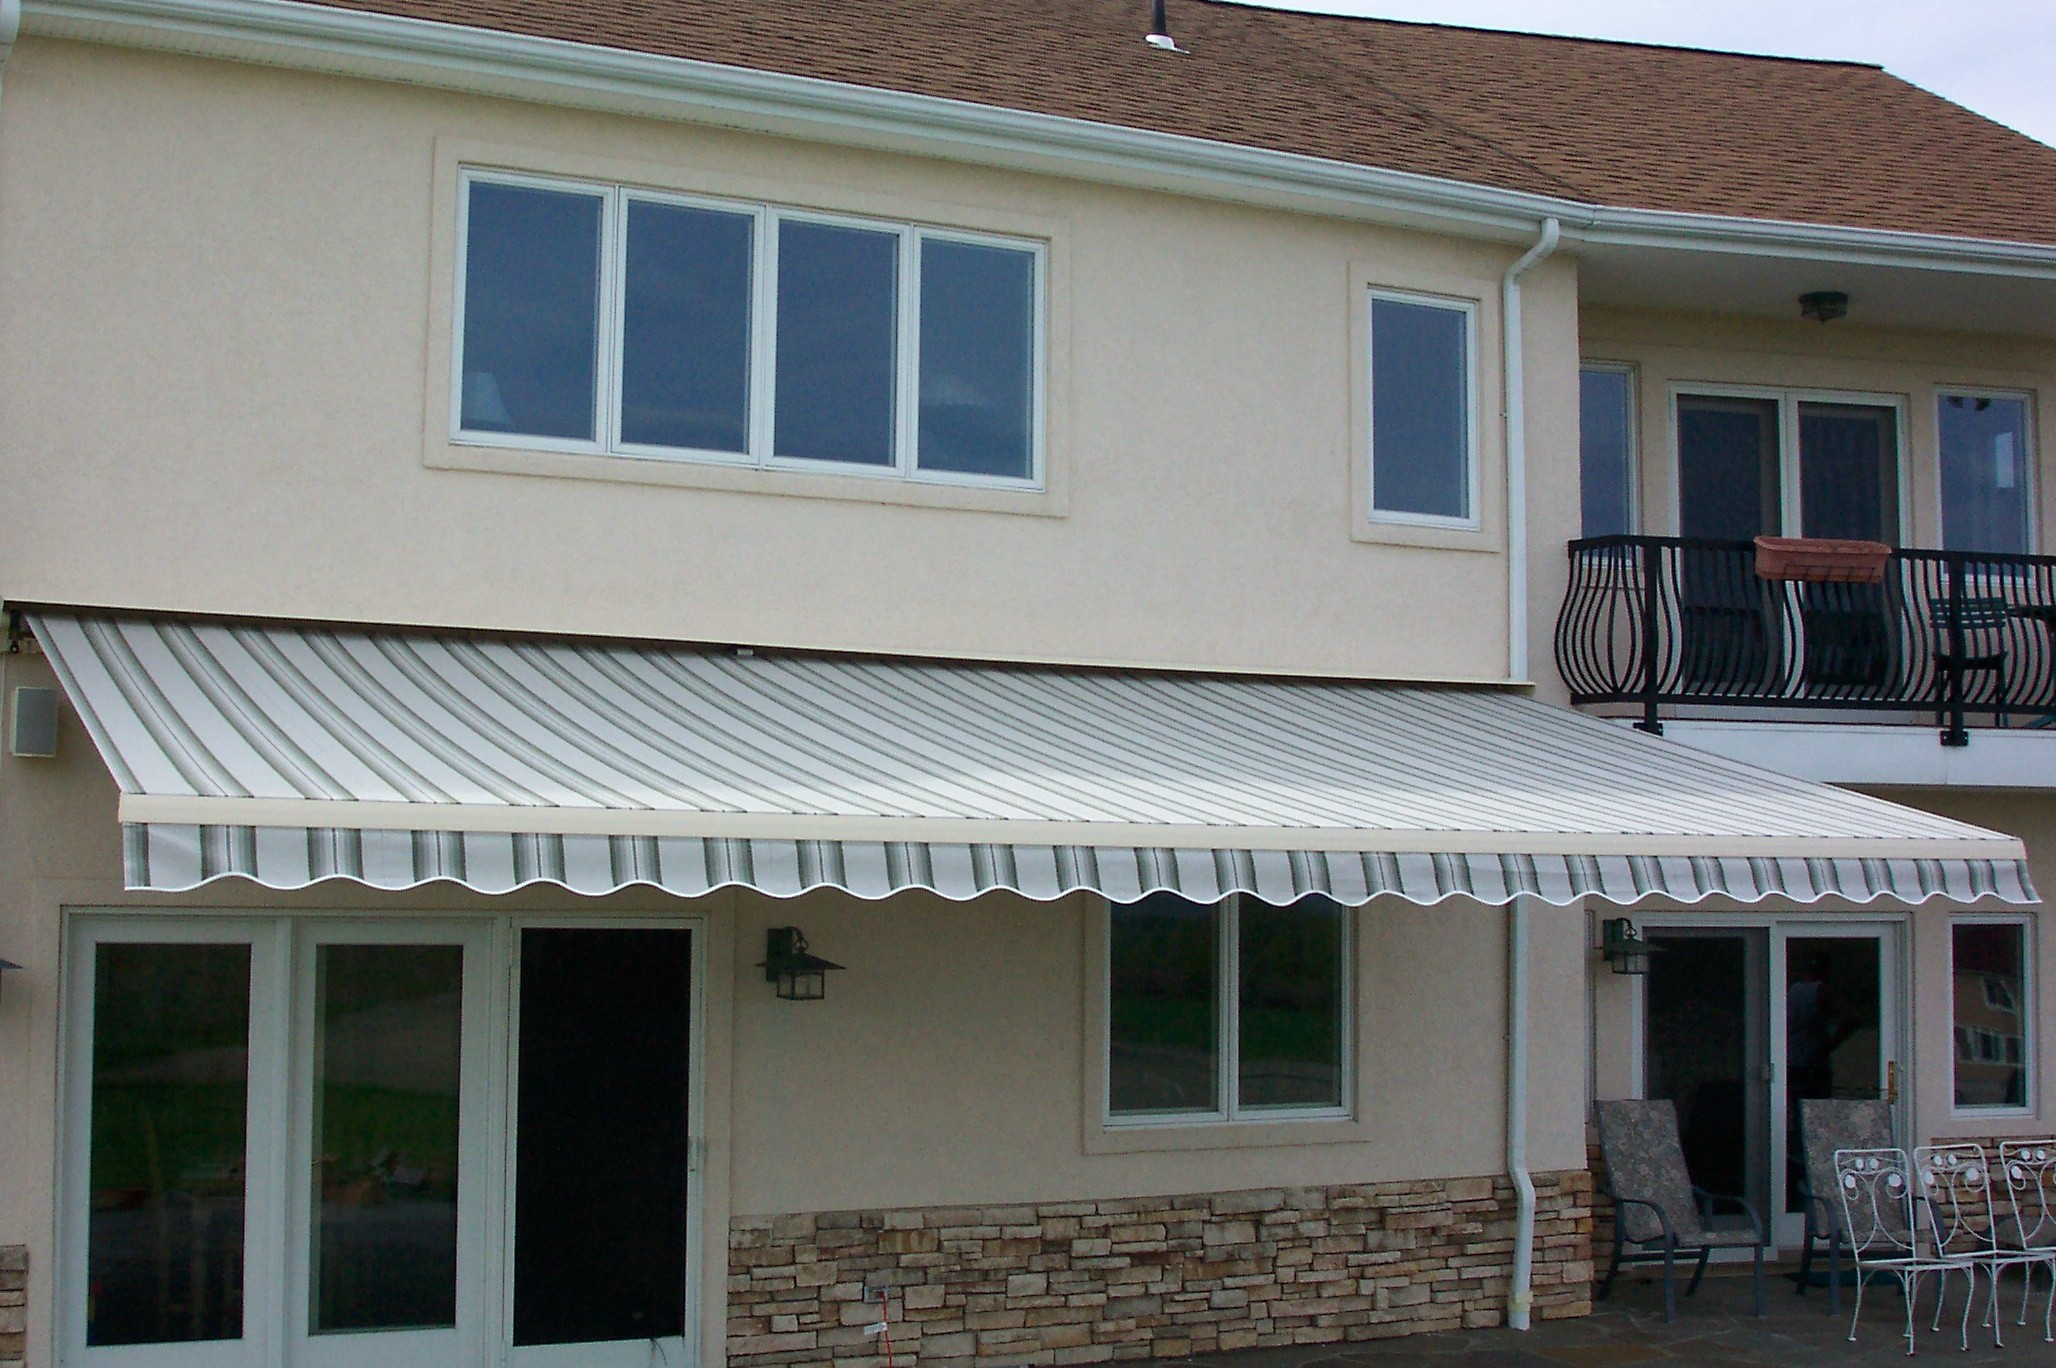 Home Depot Sunsetter Awnings : Retractable awning review